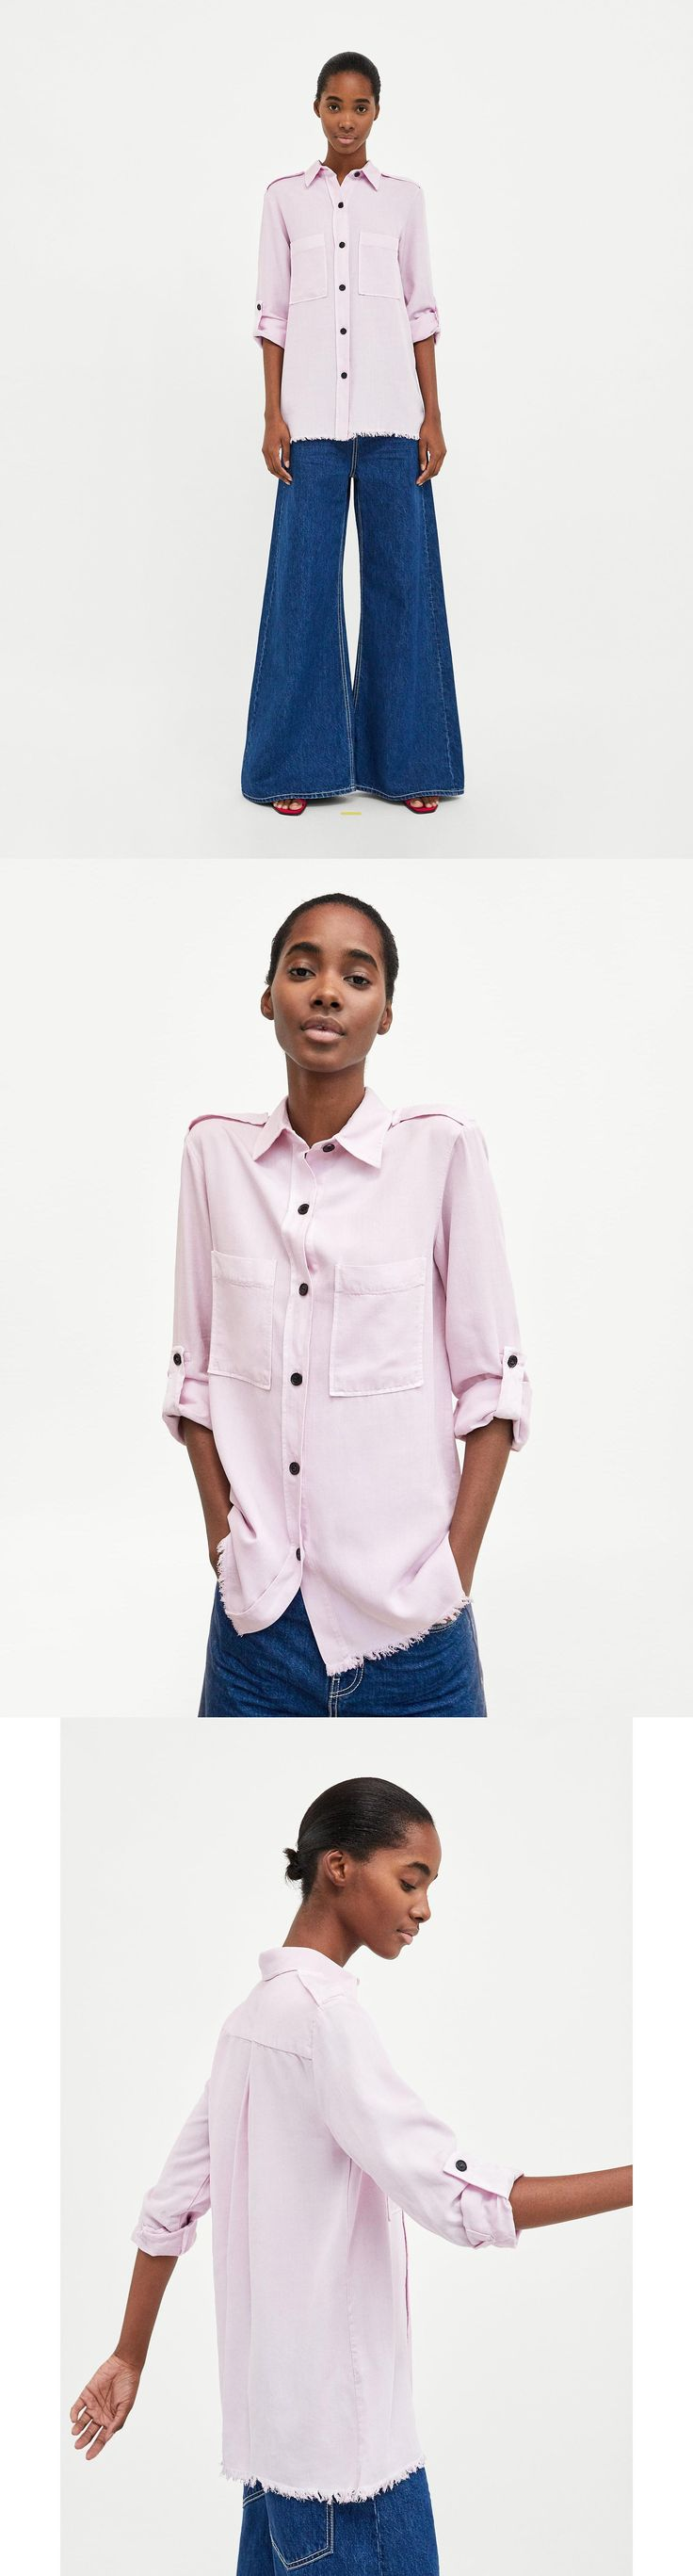 Lilac Shirt With Pockets // 49.90 USD // Zara // Flowing military-style shirt with collar and long sleeves with tabs on the shoulders and sleeves. Features patch front pockets, a crease in the back and a button-up front. JOIN LIFE Care for fiber: TENCEL®Lyocell. TENCEL® is derived from wood grown in sustainable forests that guarantee reforestation. HEIGHT OF MODEL: 178 cm. / 5′ 10″